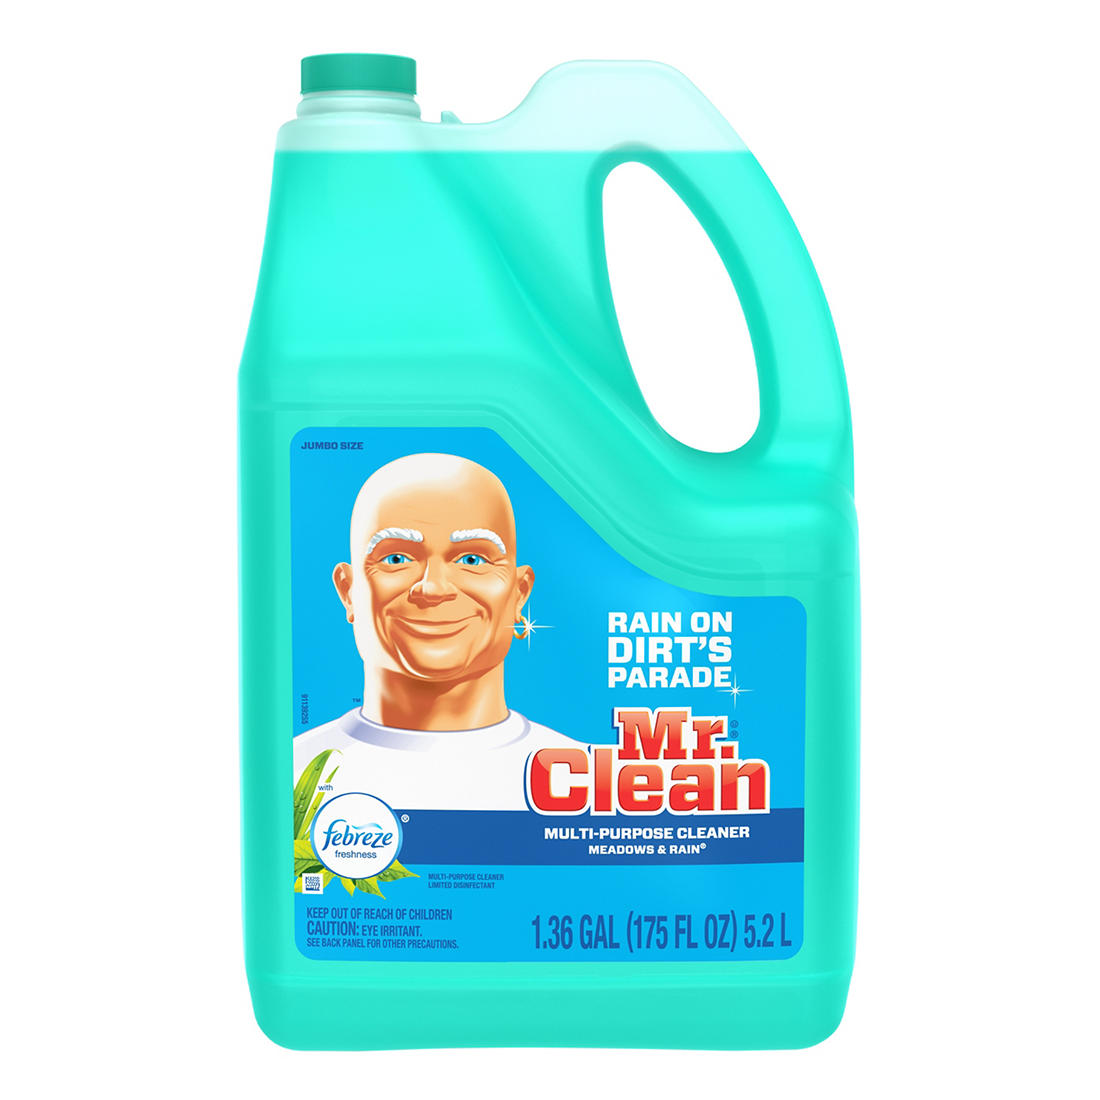 photograph about Mr Clean Coupons Printable identified as Mr. Fresh Multi-Rationale Cleaner with Febreze Meadows Rain Odor, 1.36 gal.